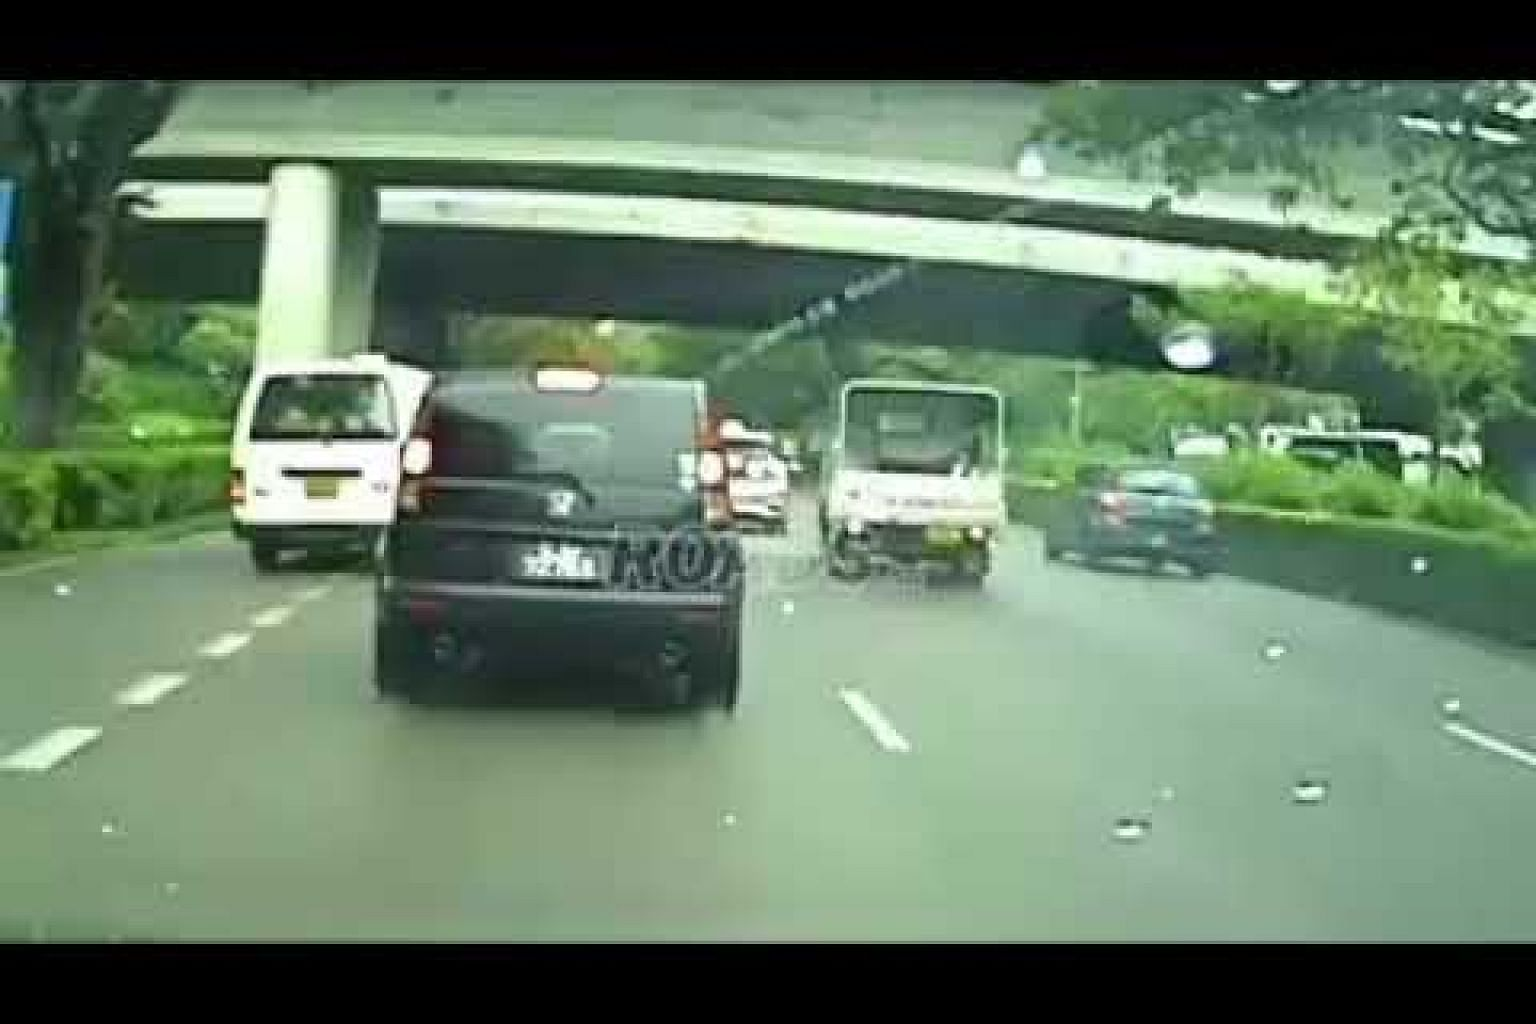 Lorry skids on wet road along PIE, hits car before crashing into barriers